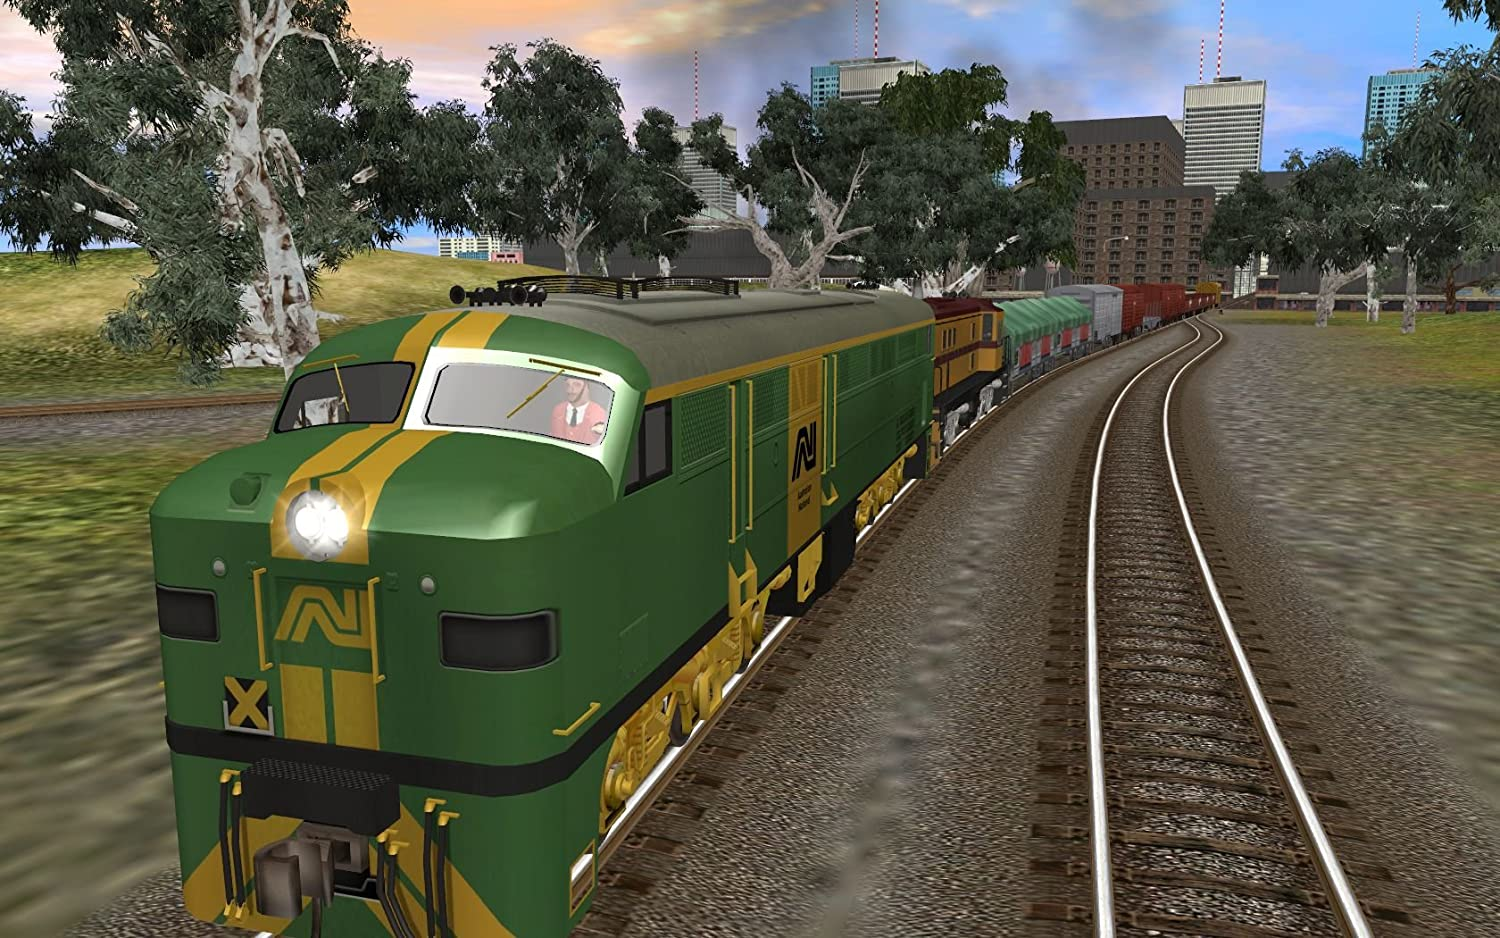 Trainz Simulator 12 Train Download Free - intelligentdagor